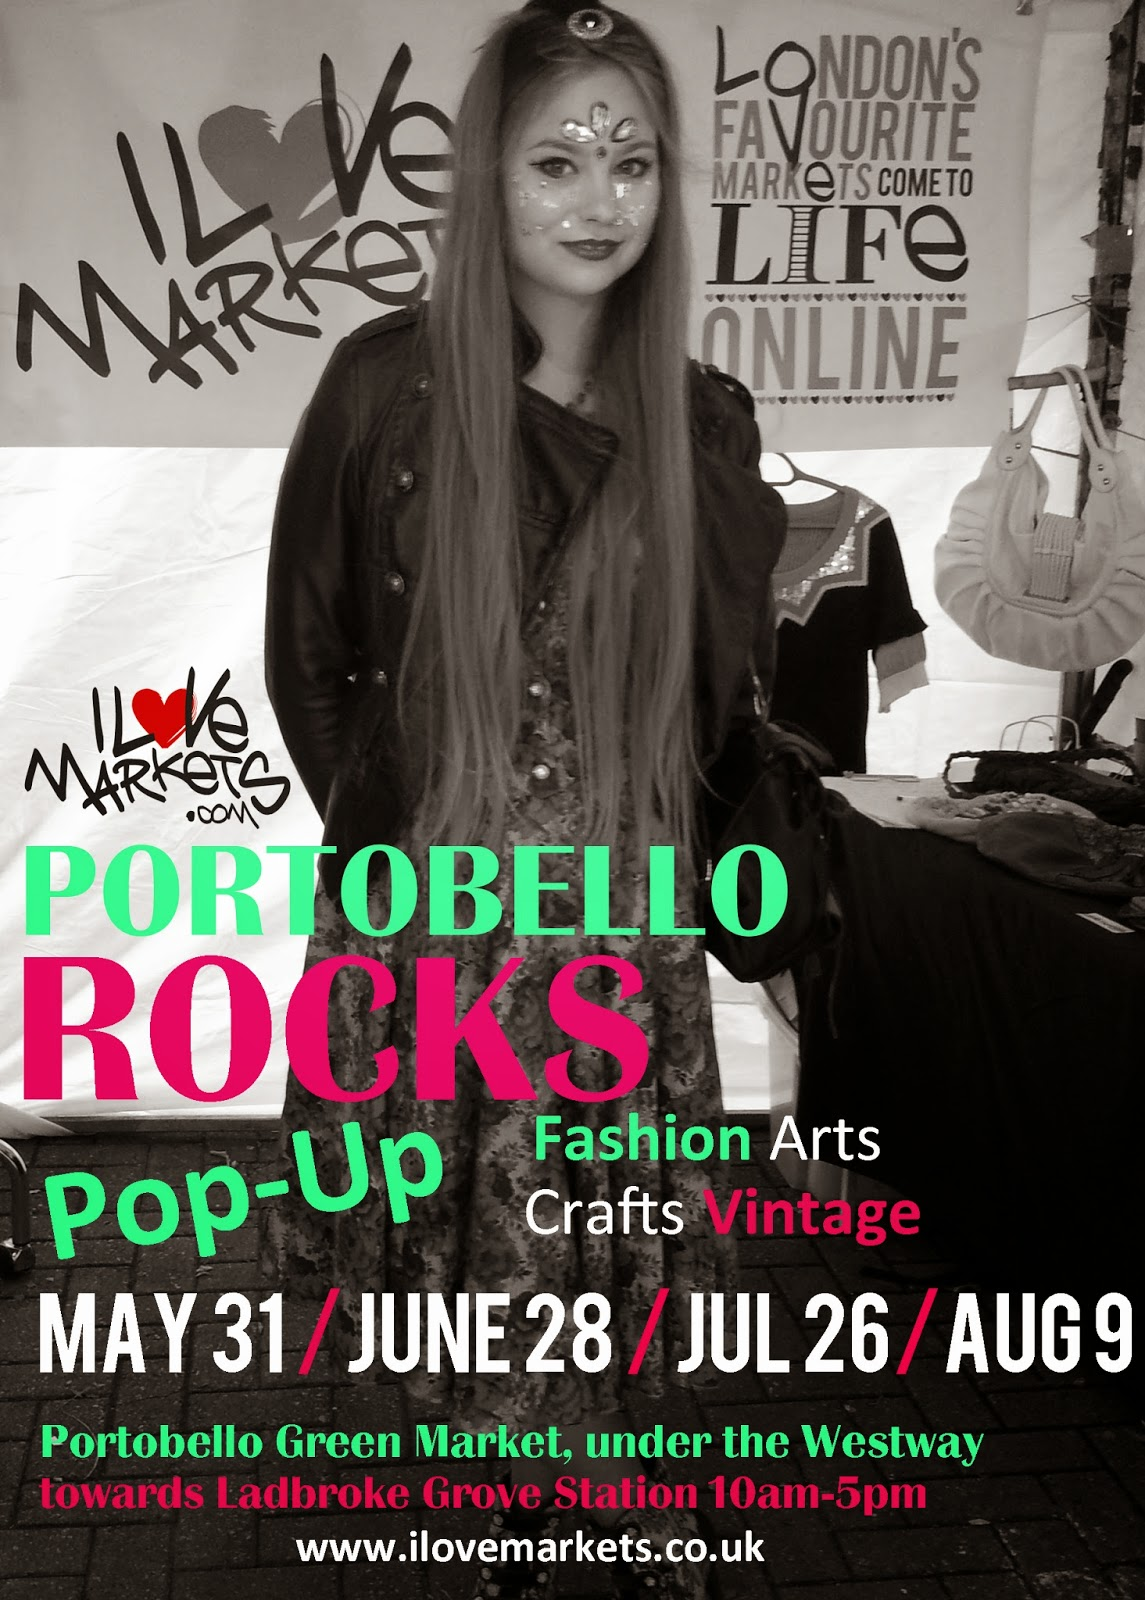 https://www.ilovemarkets.co.uk/london/events/portobello-rocks-summertime